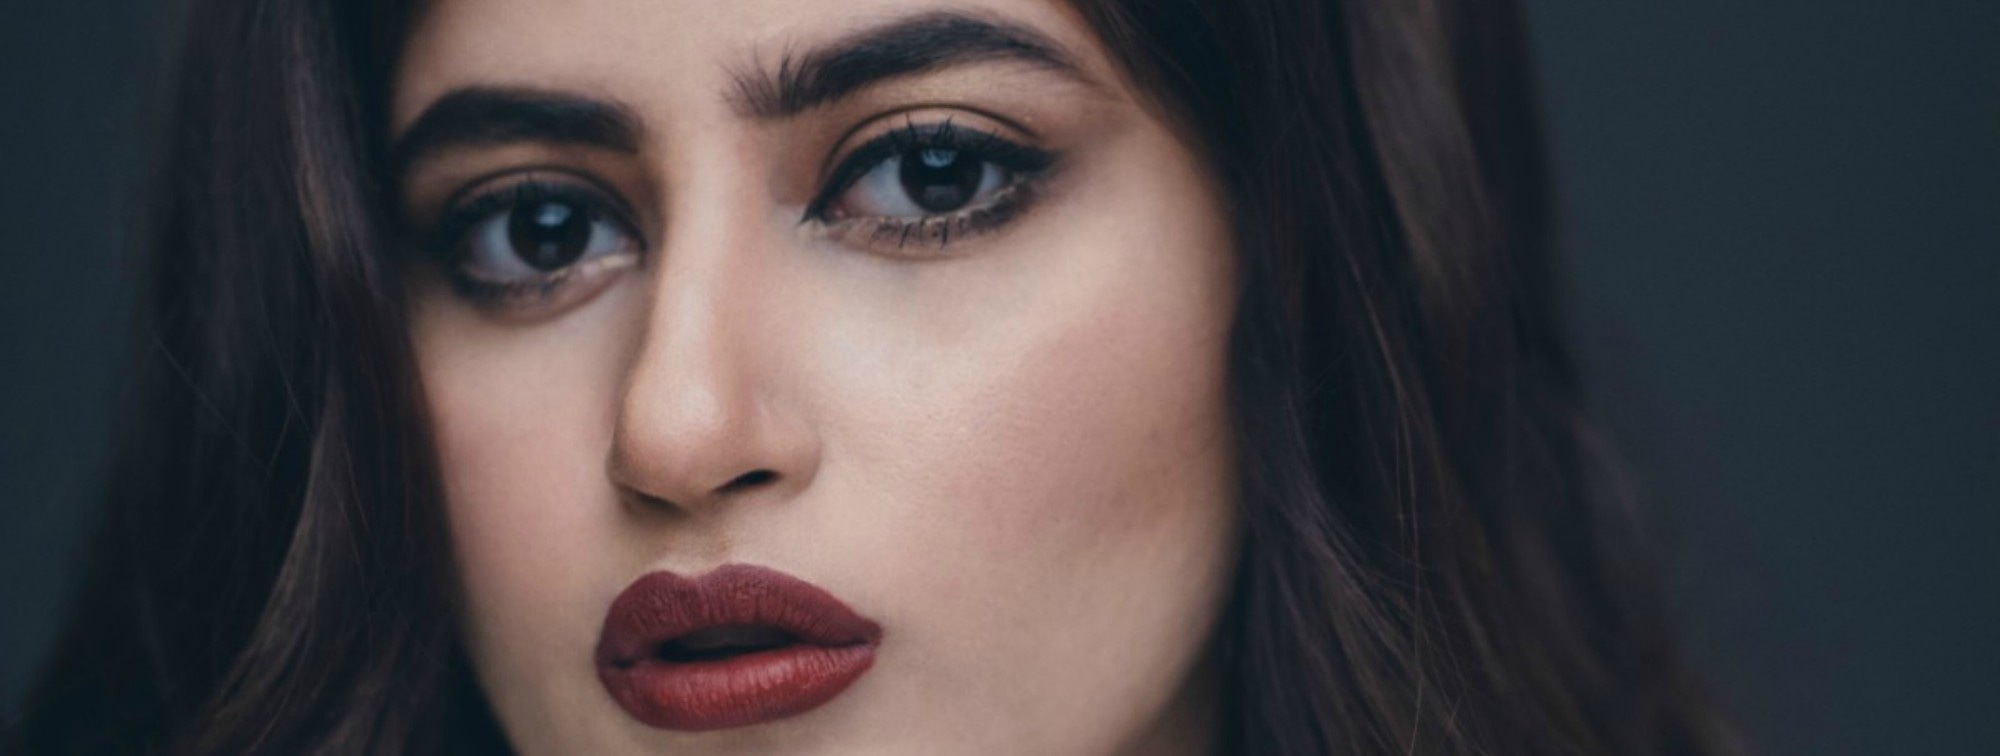 Sajal ali net worth